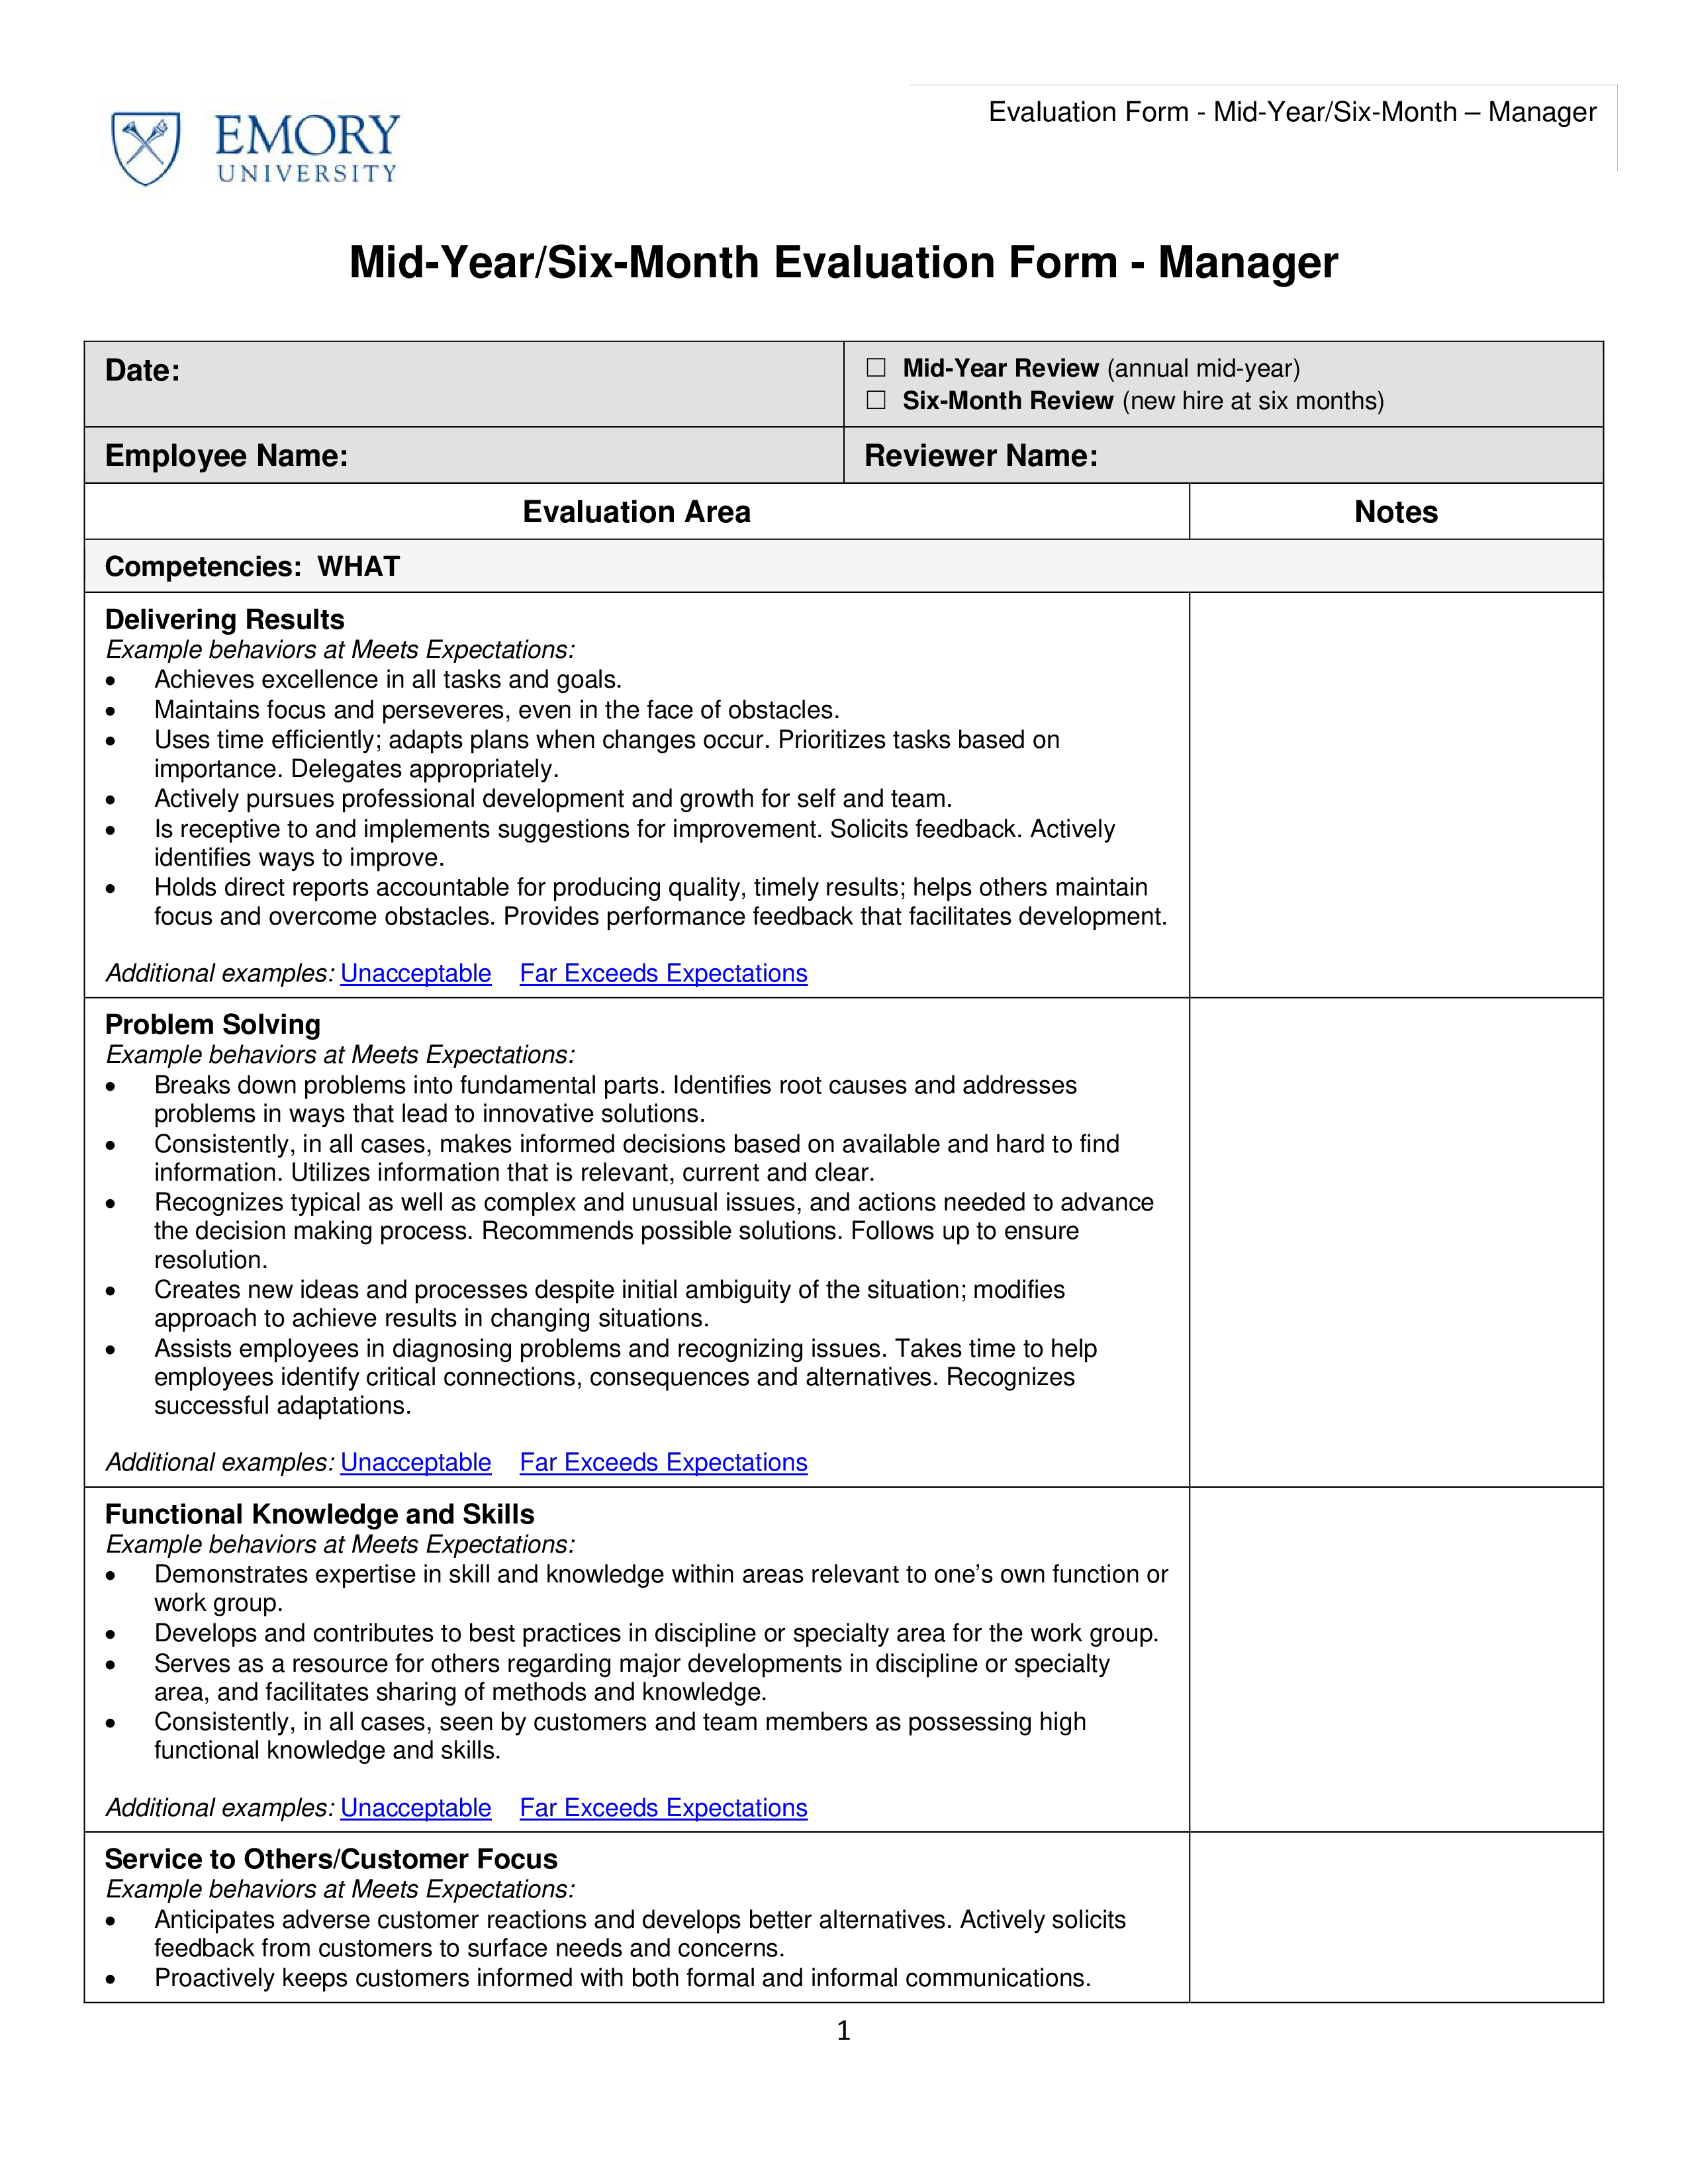 Free Six Month Employee Evaluation Form   Templates at ...